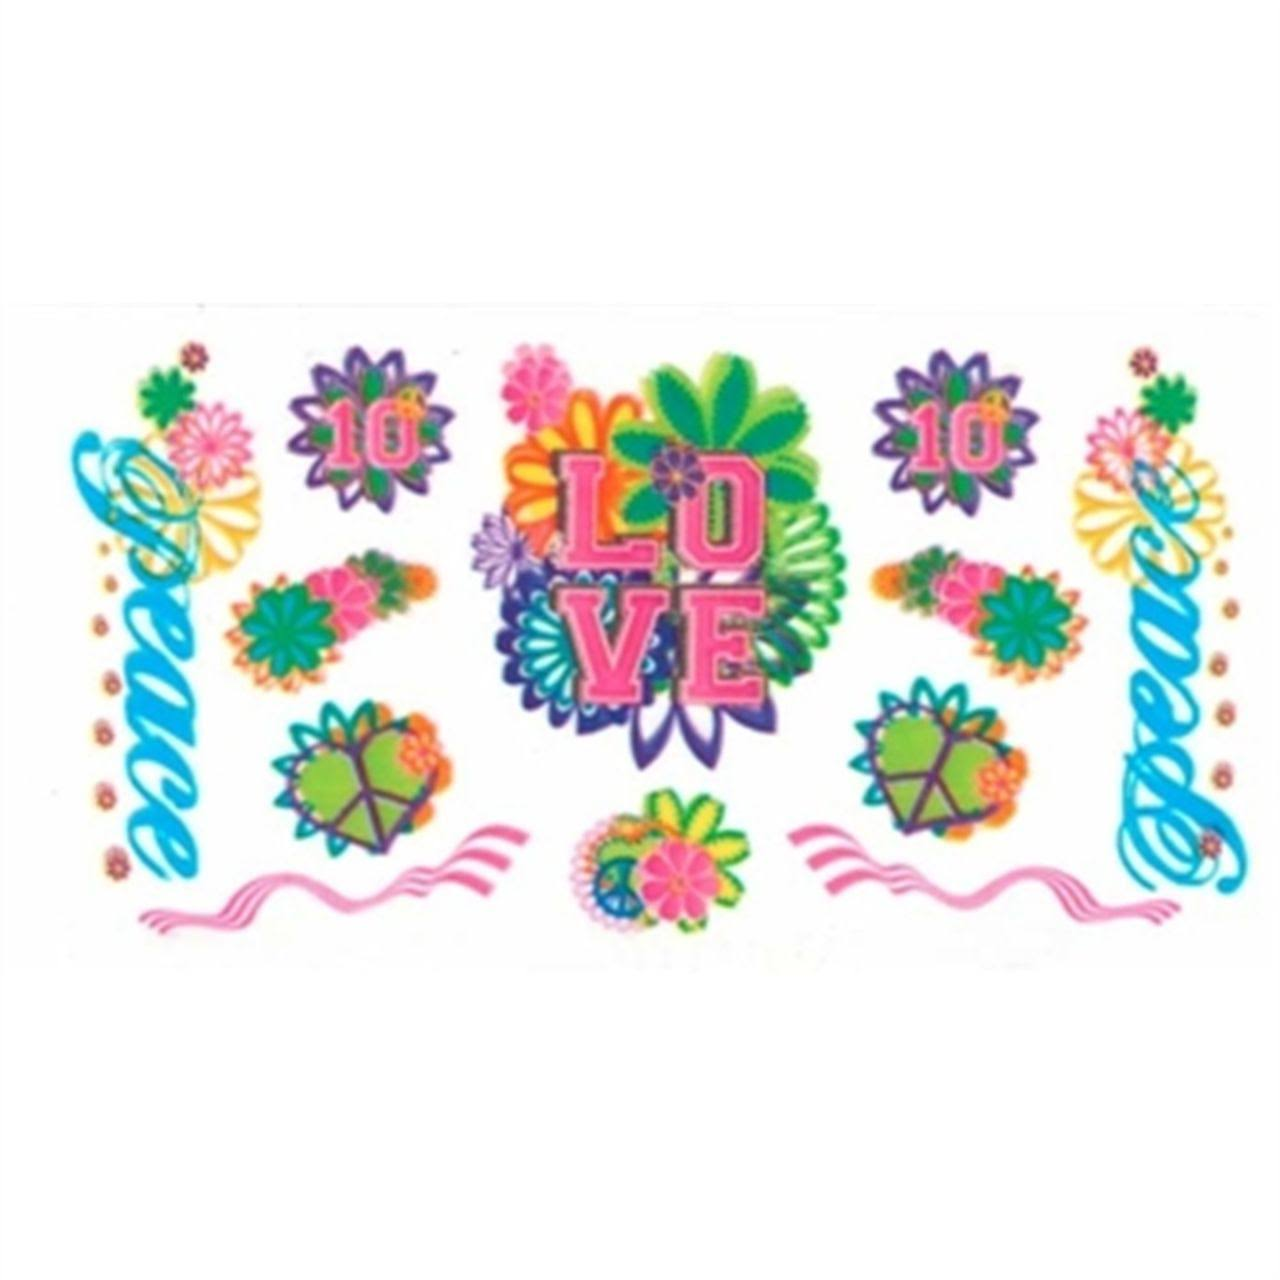 Pinecar Peace and Love Dry Transfer Decals